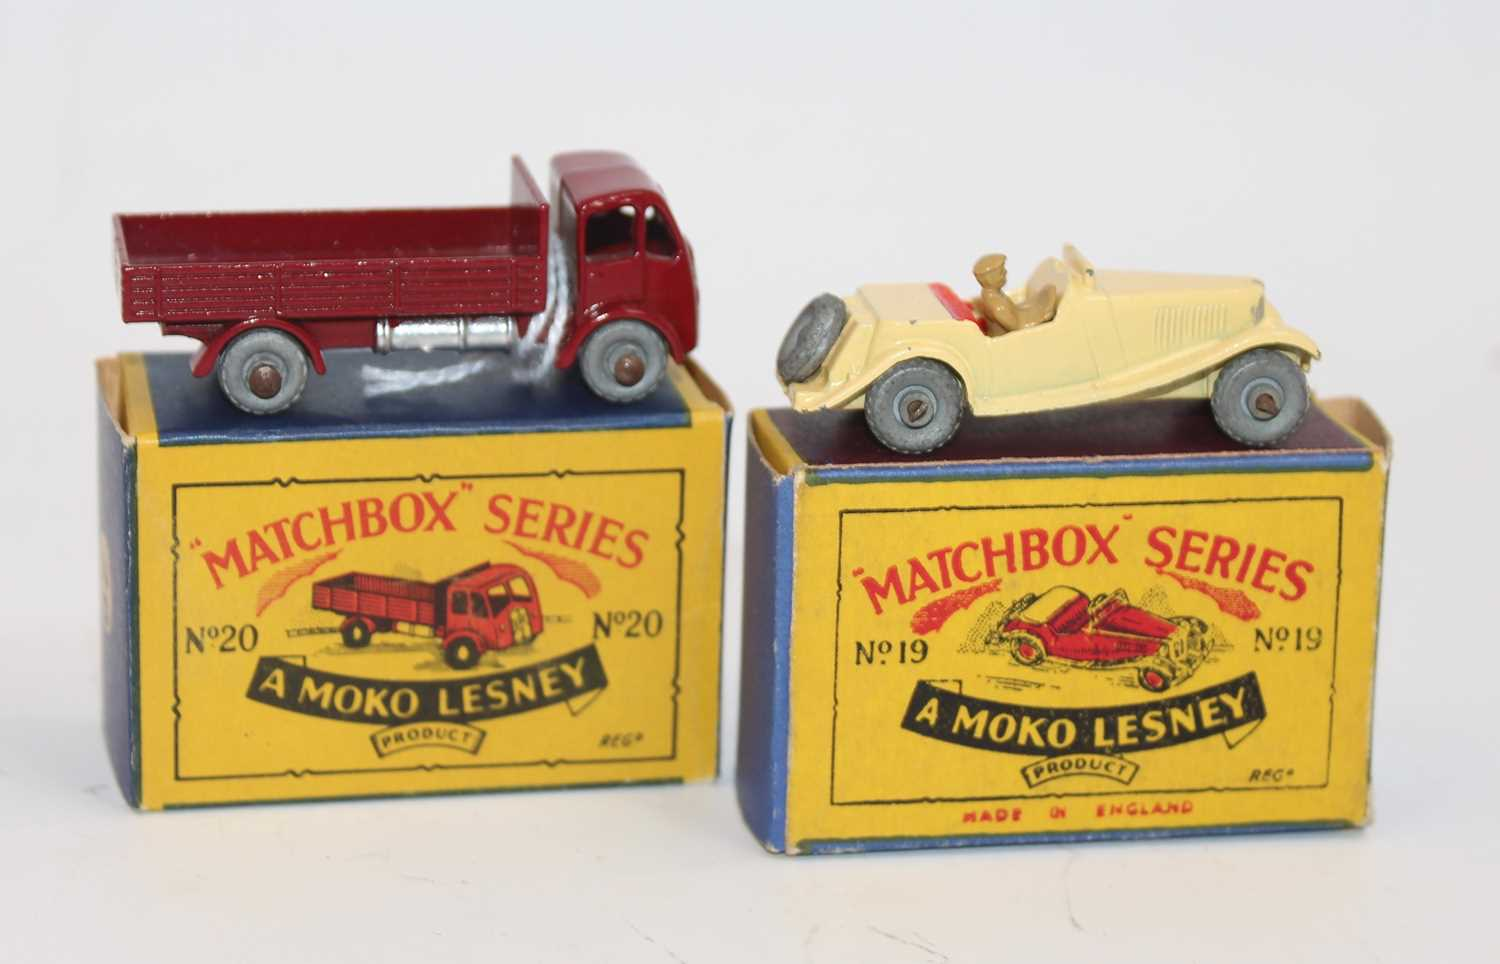 Matchbox group of 2 models as follows: Matchbox 19a MG TD. in cream with red seats, metal wheels and - Image 2 of 2